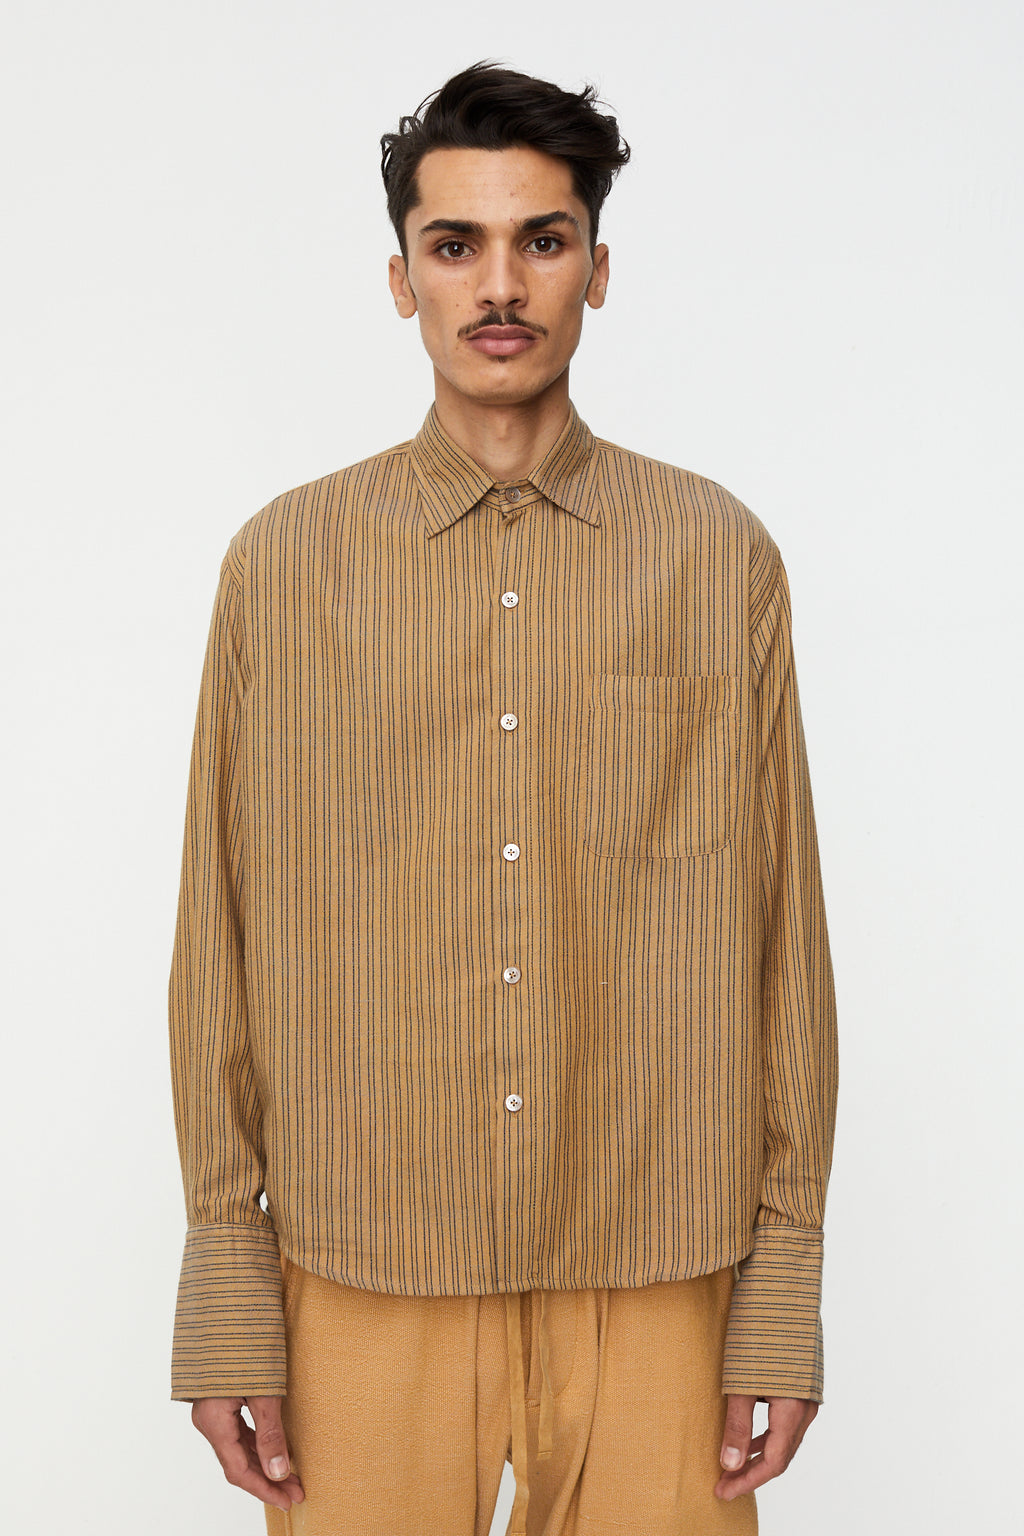 French Cuff Button Down Shirt, Double Pinstripe Camel / Navy